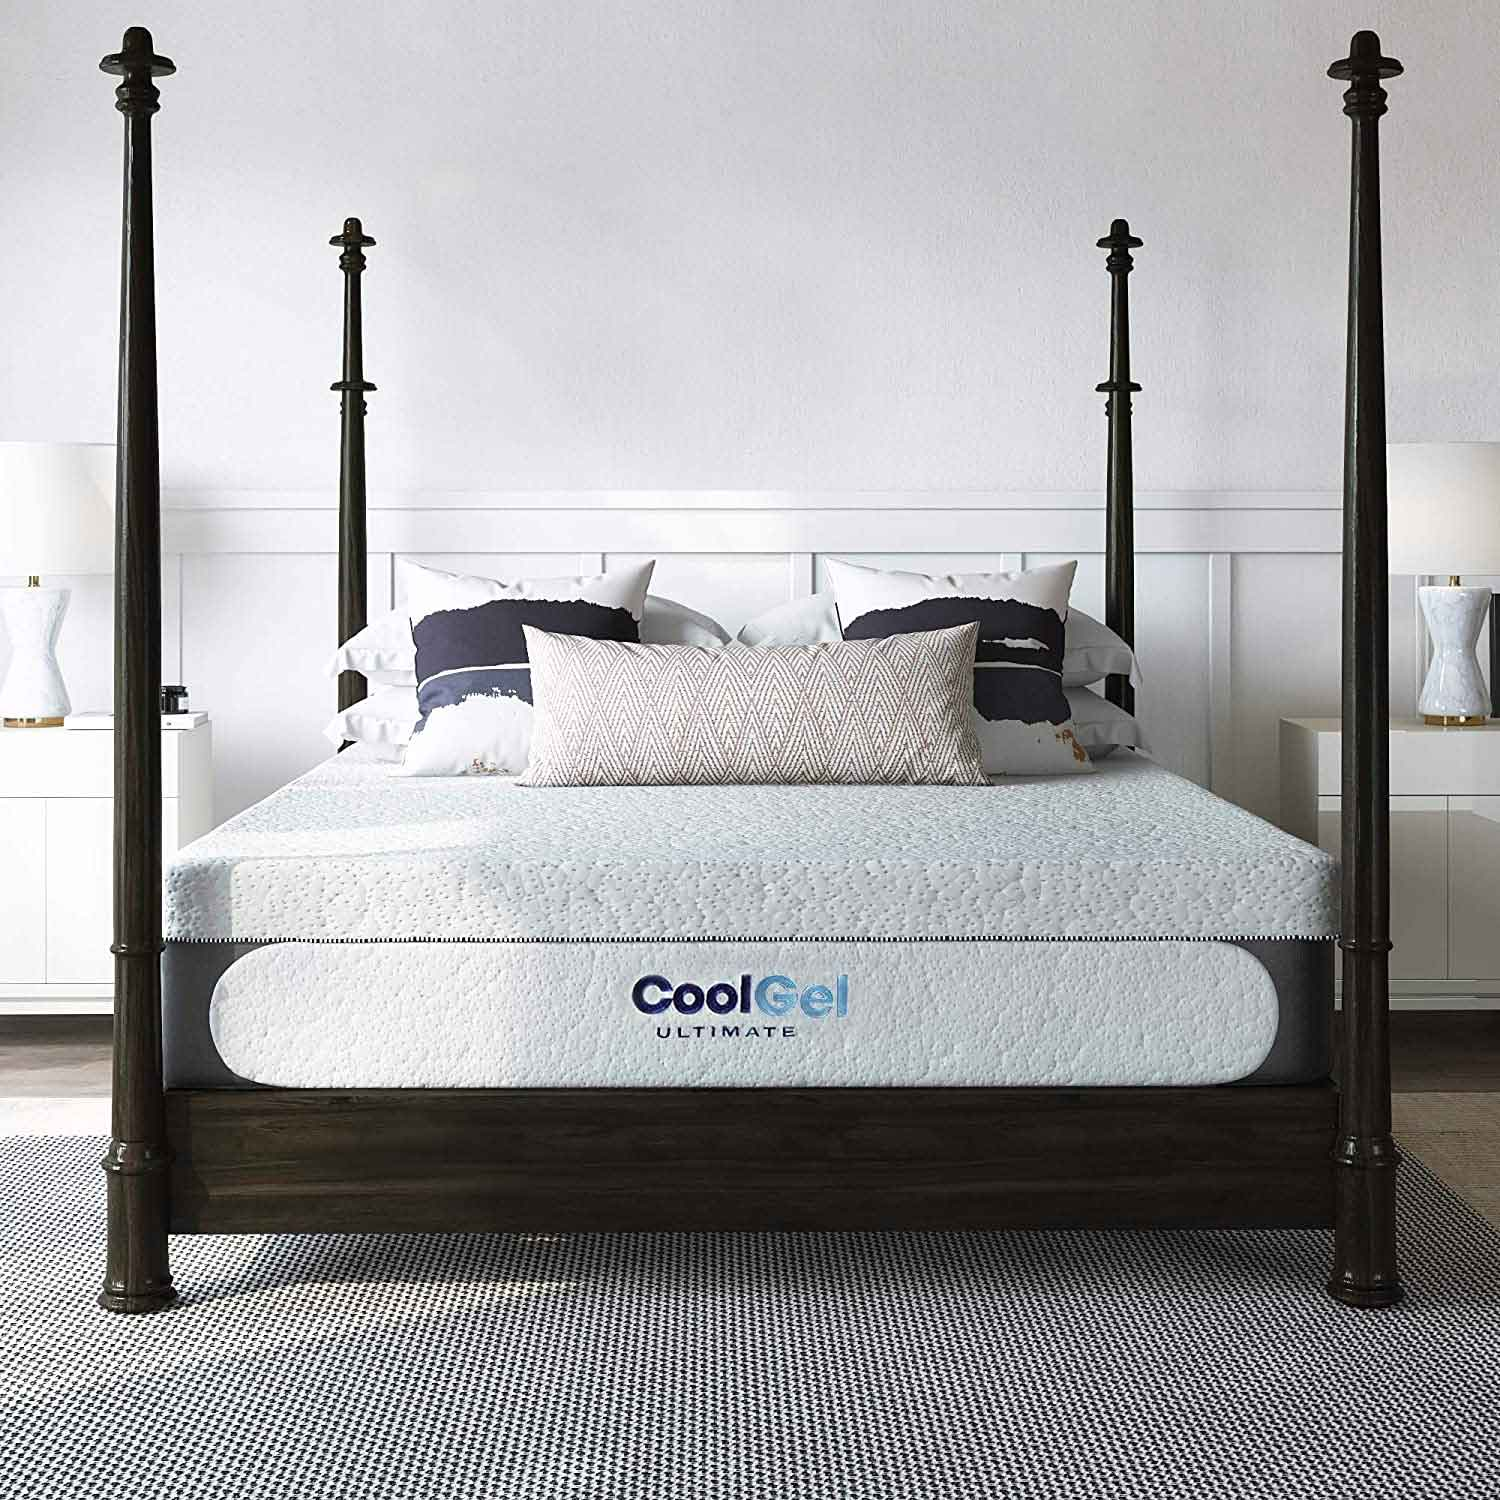 Classic Brands Cool Gel Chill Memory Foam 14-Inch Mattress with 2 BONUS Pillows | CertiPUR-US Certified | Bed-in-a-Box, King